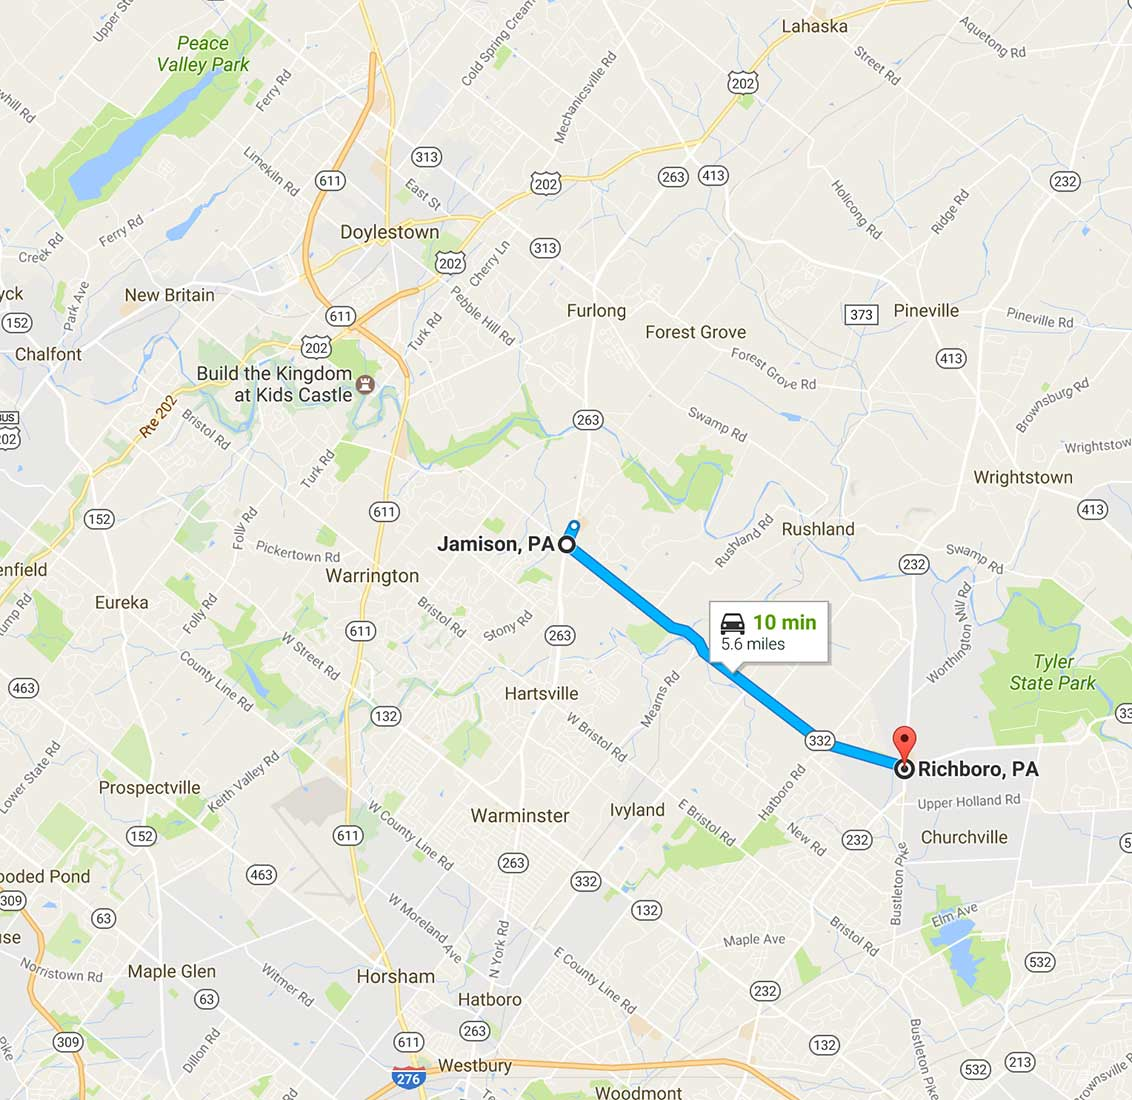 richboro, pa service map